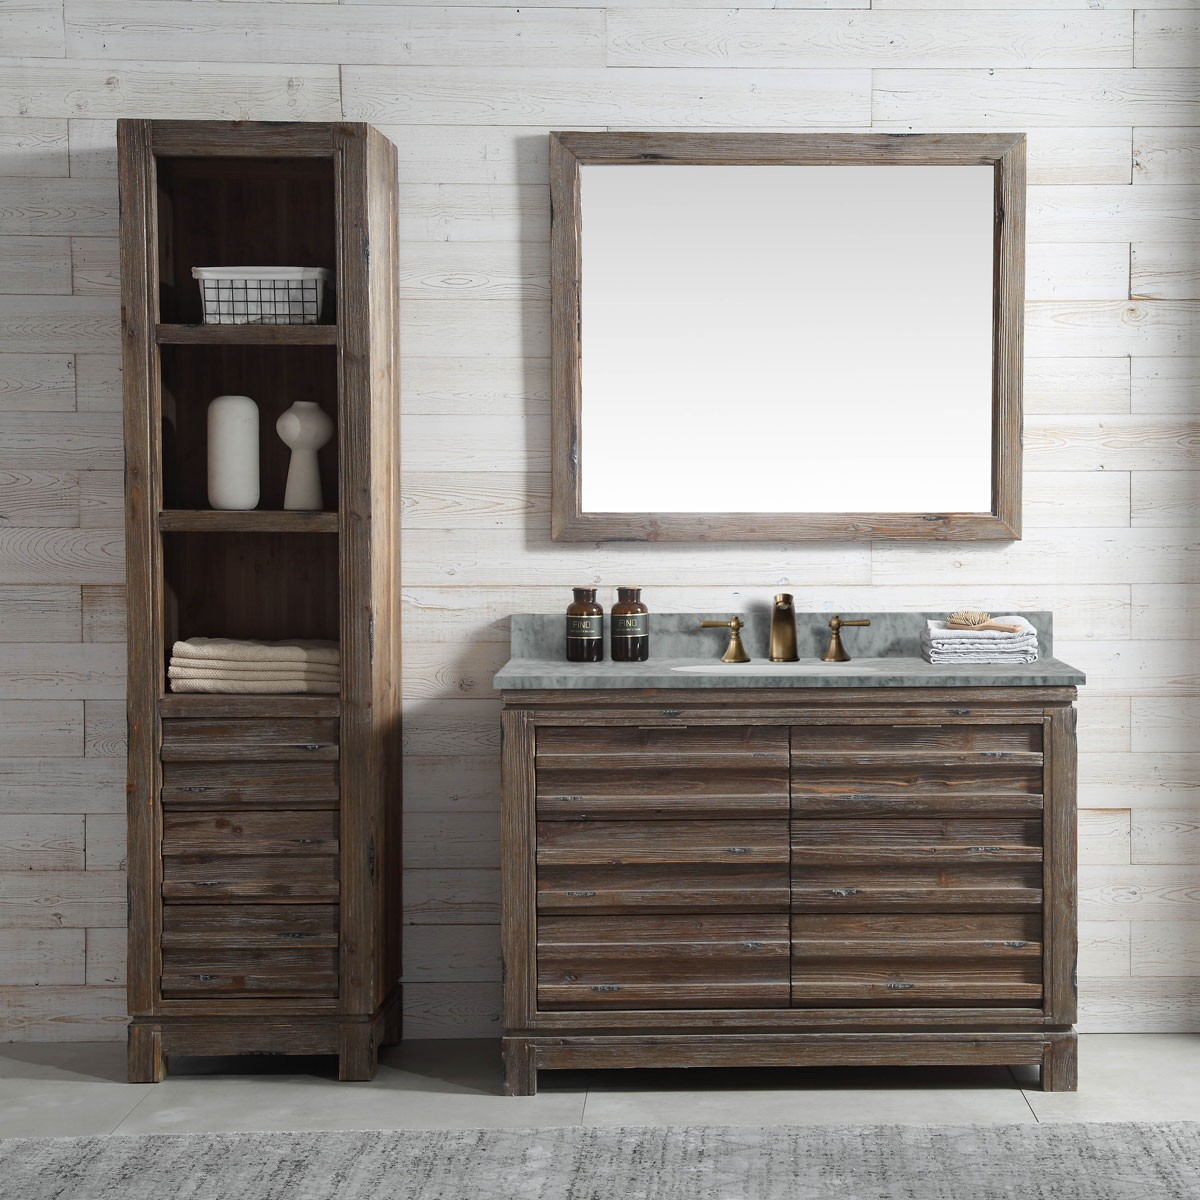 48 In. Freestanding Bathroom Vanity Set (DK-WH9548-BR-SET)